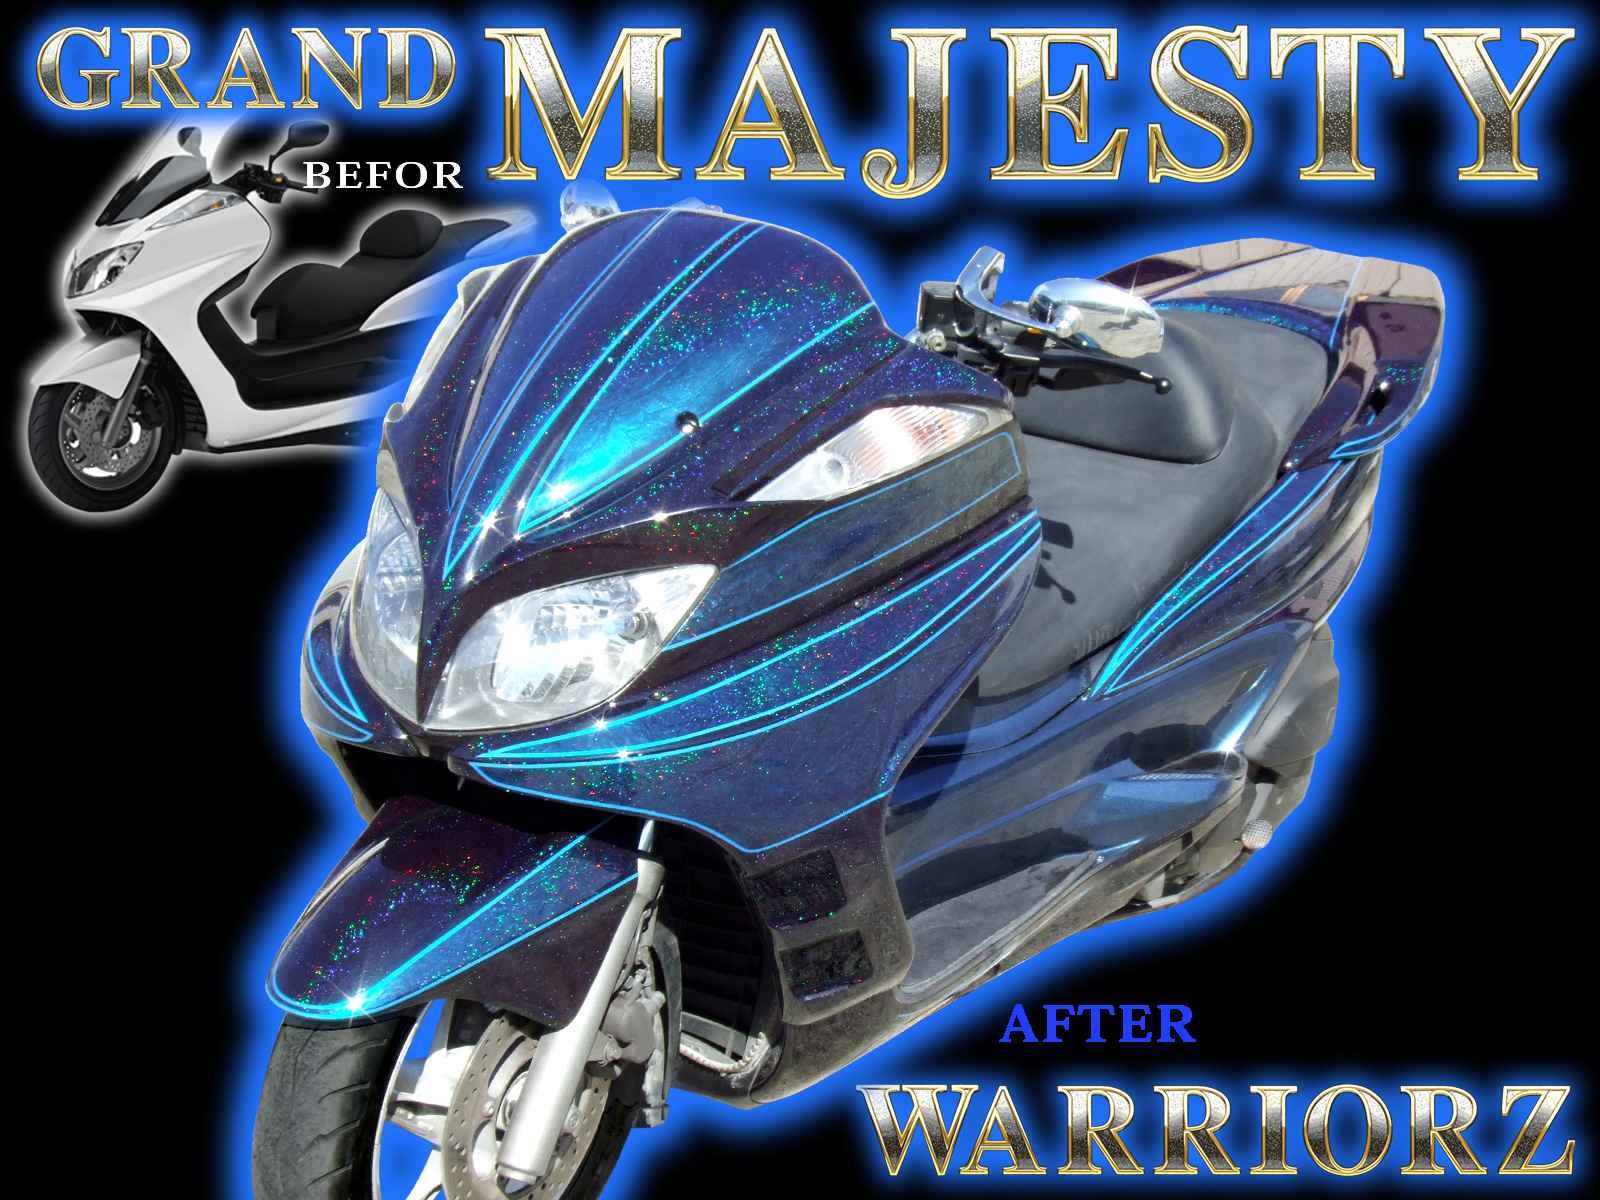 GRAND MAJESTY YAMAHA